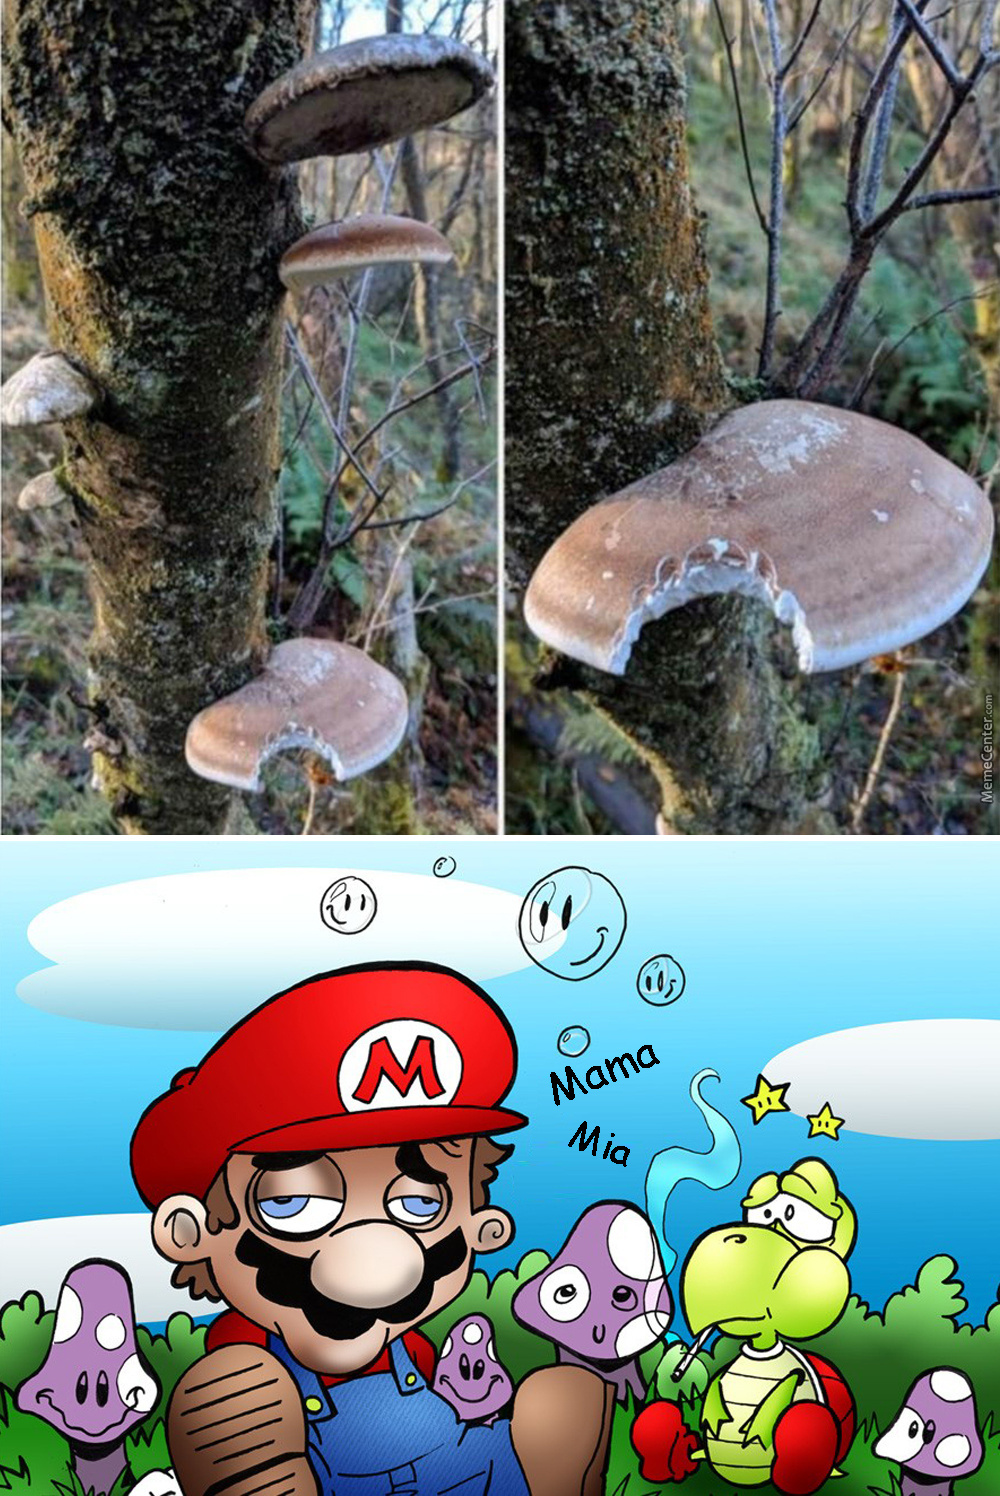 When Mario Was Still Learning About The Mushroom Kingdom